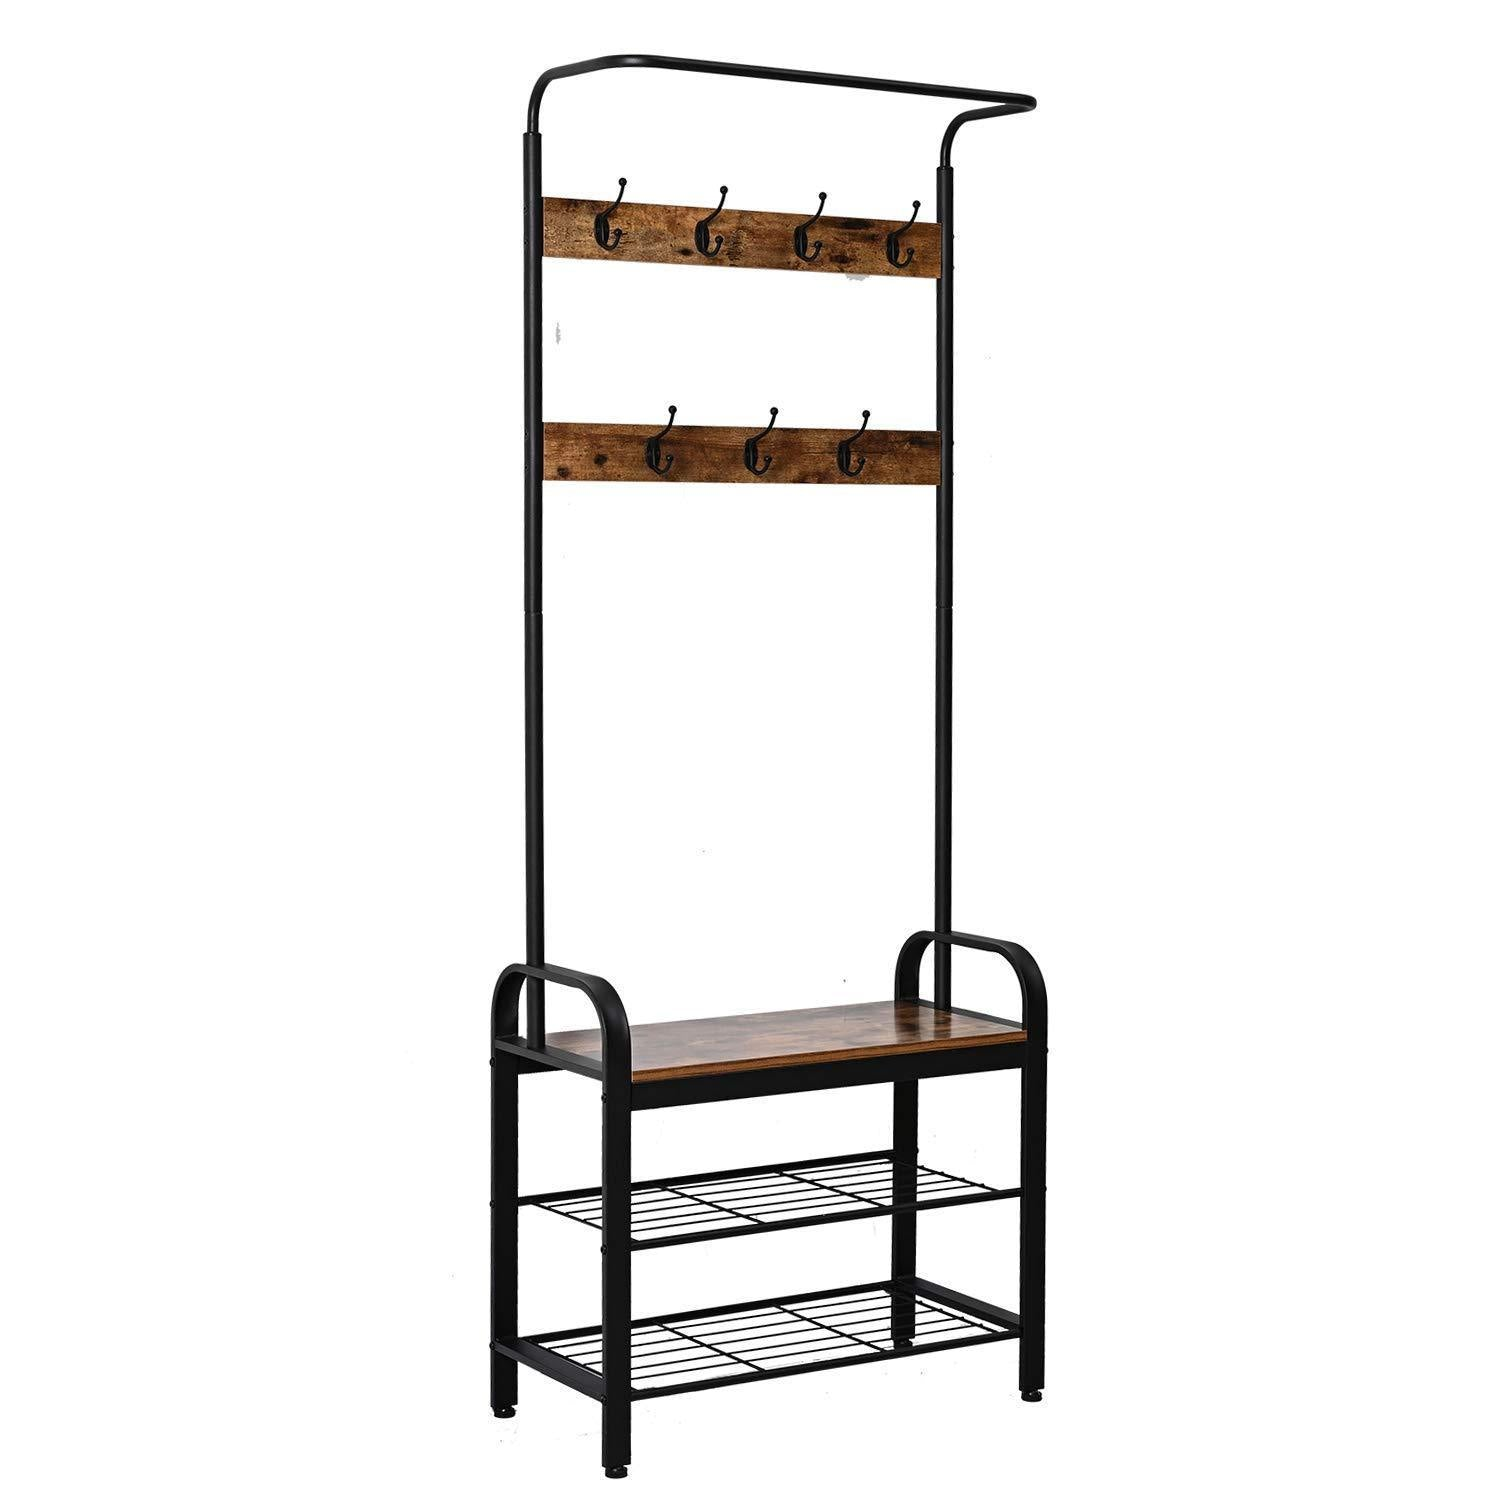 IRONCK Coat Rack Free Standing Hall Tree, Entryway Bench, Entryway Organizer, Vintage Industrial Coat Stand, 3 in 1 Design Wood Look Accent Furniture with Stable Metal Frame Easy Assembly